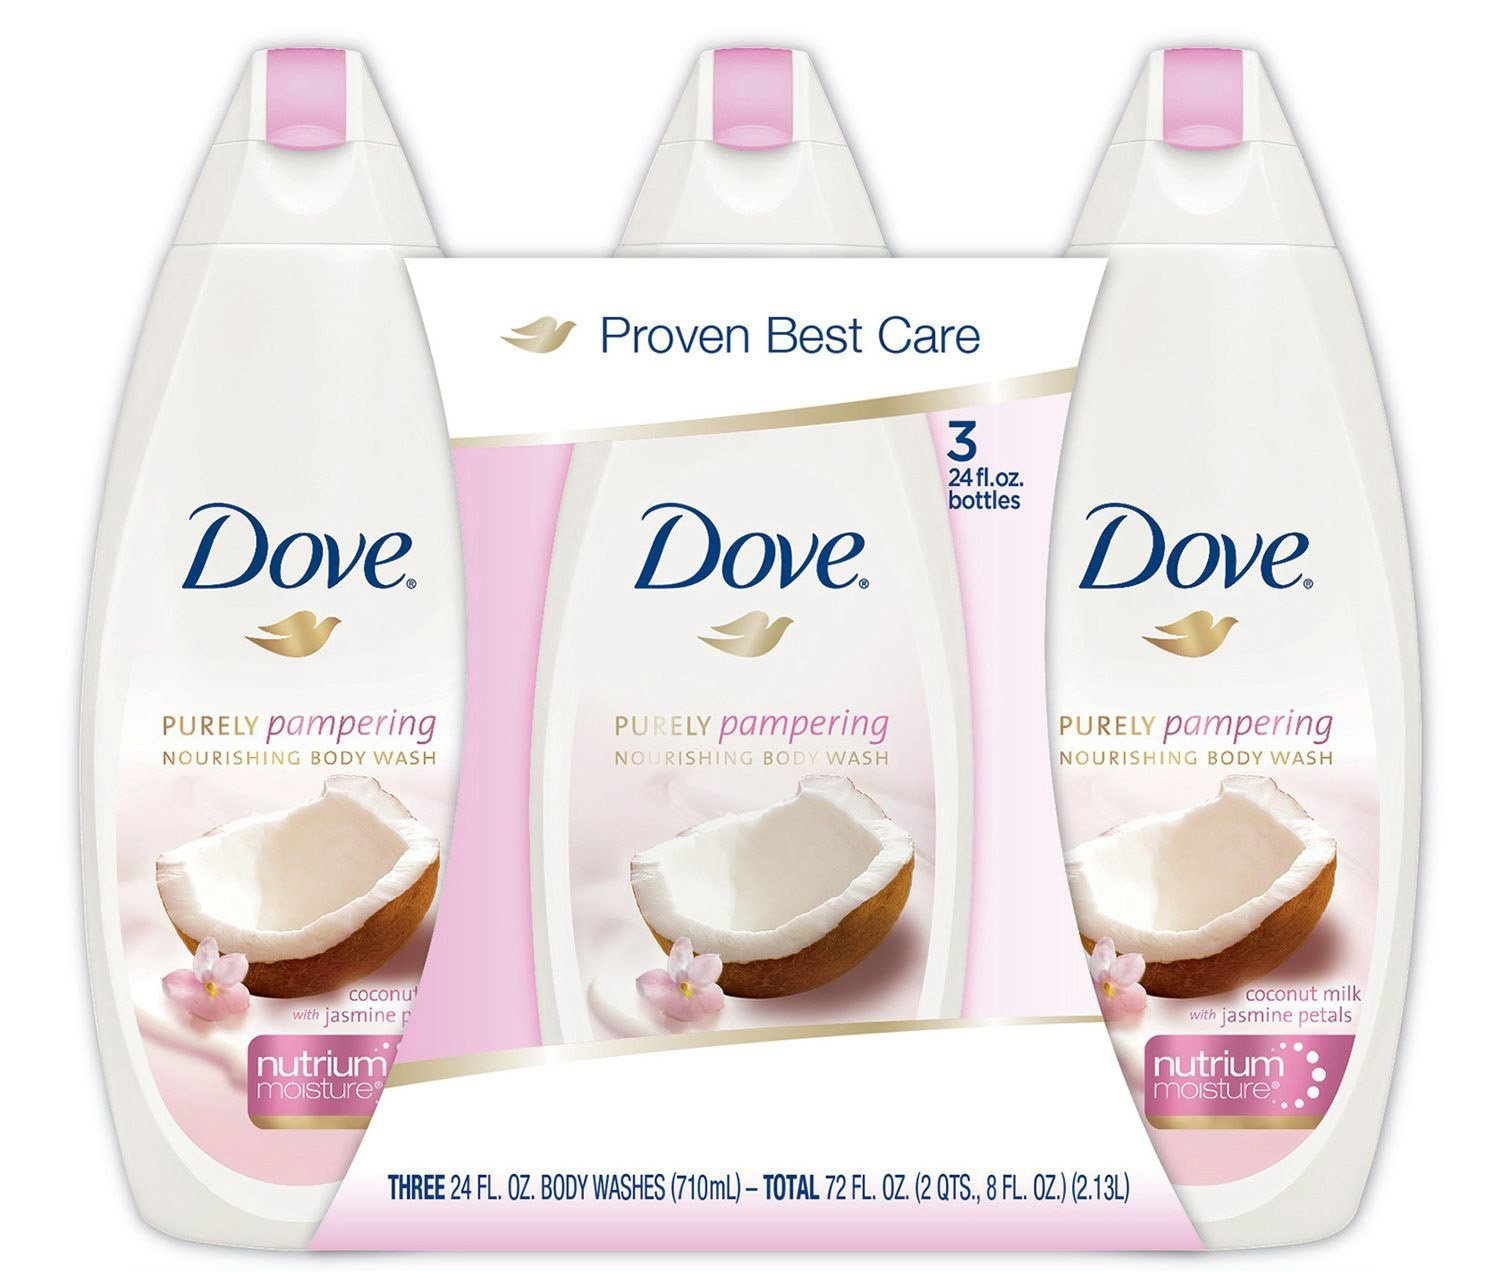 Dove Purely Pampering Body Wash Coconut Milk 24 Fl Oz 3 Pk Buy Online In Saint Lucia Dove Men Care Products In Saint Lucia See Prices Reviews And Free Delivery Over Ex 200 Desertcart